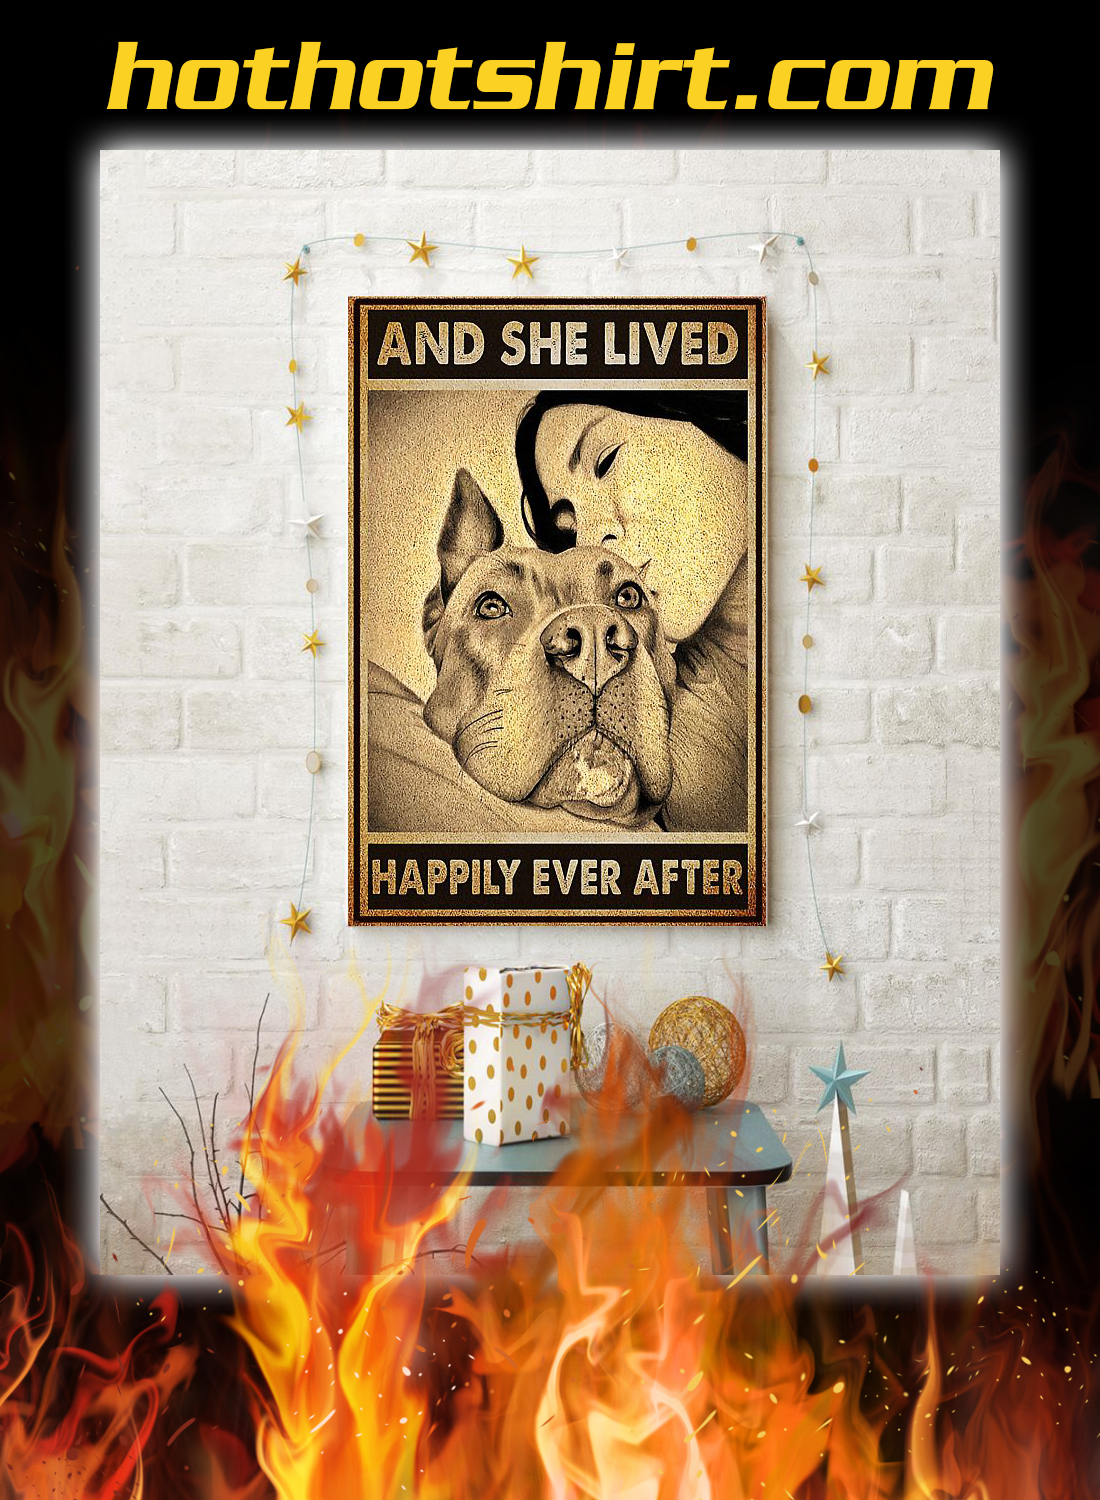 Pitbull and she lived happily ever after poster 3